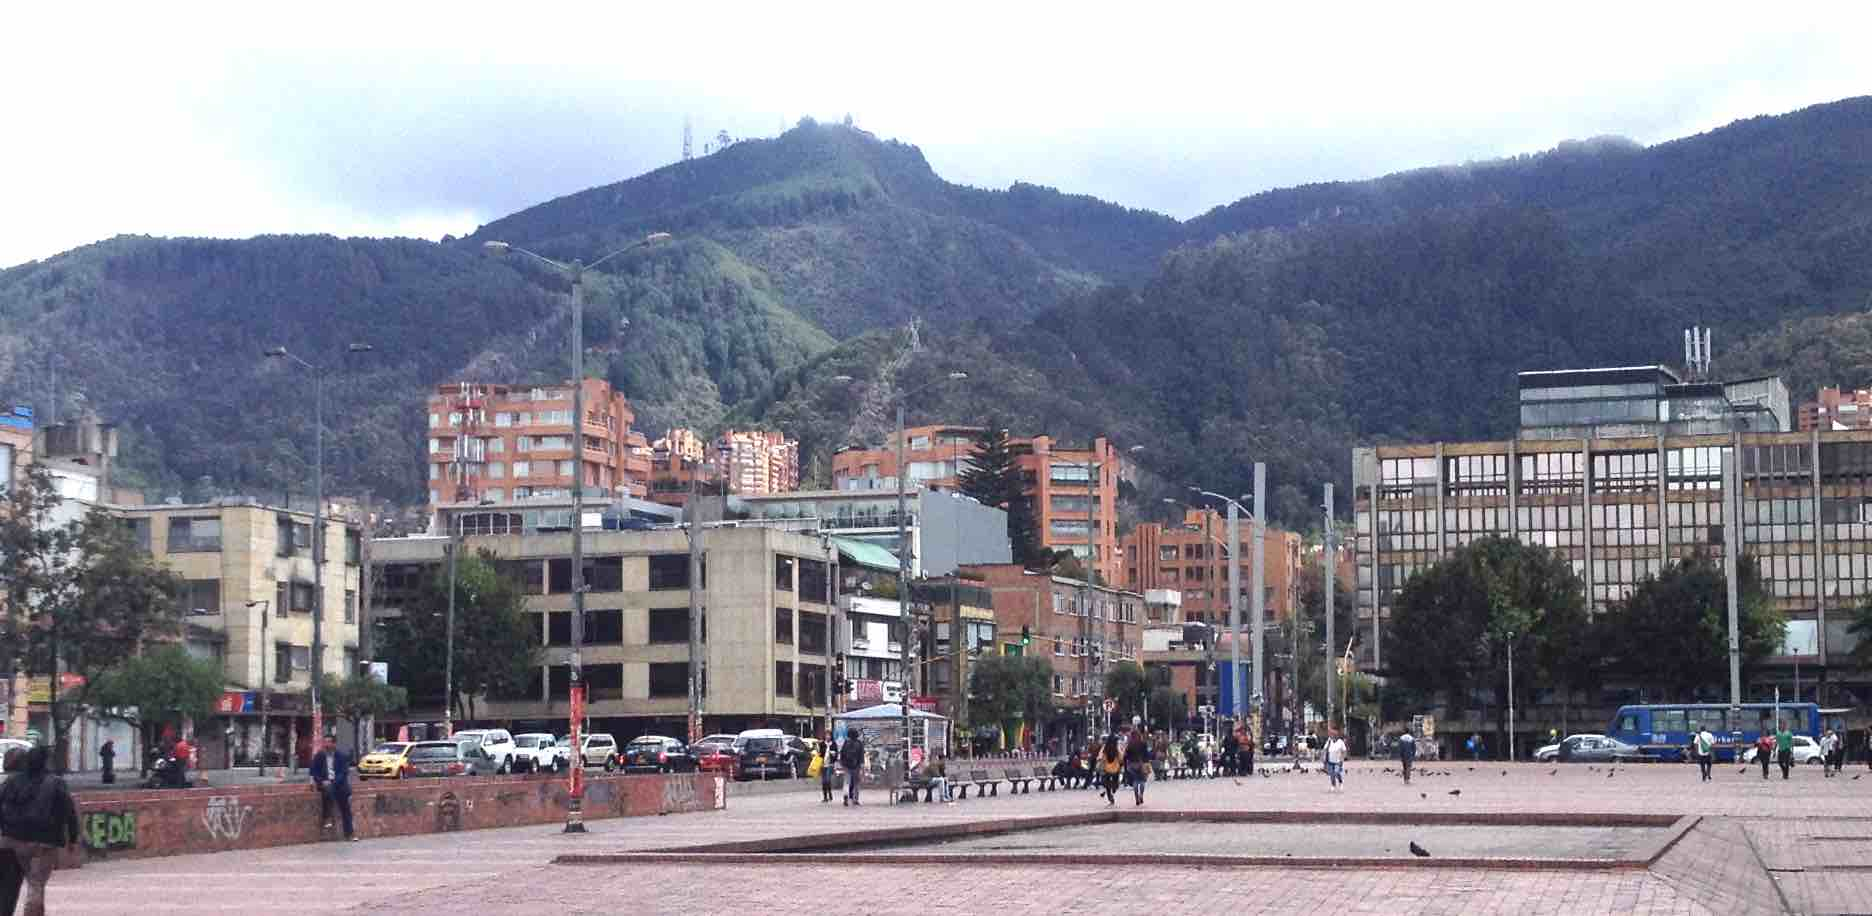 What Is The Cost Of Living In Bogotá?